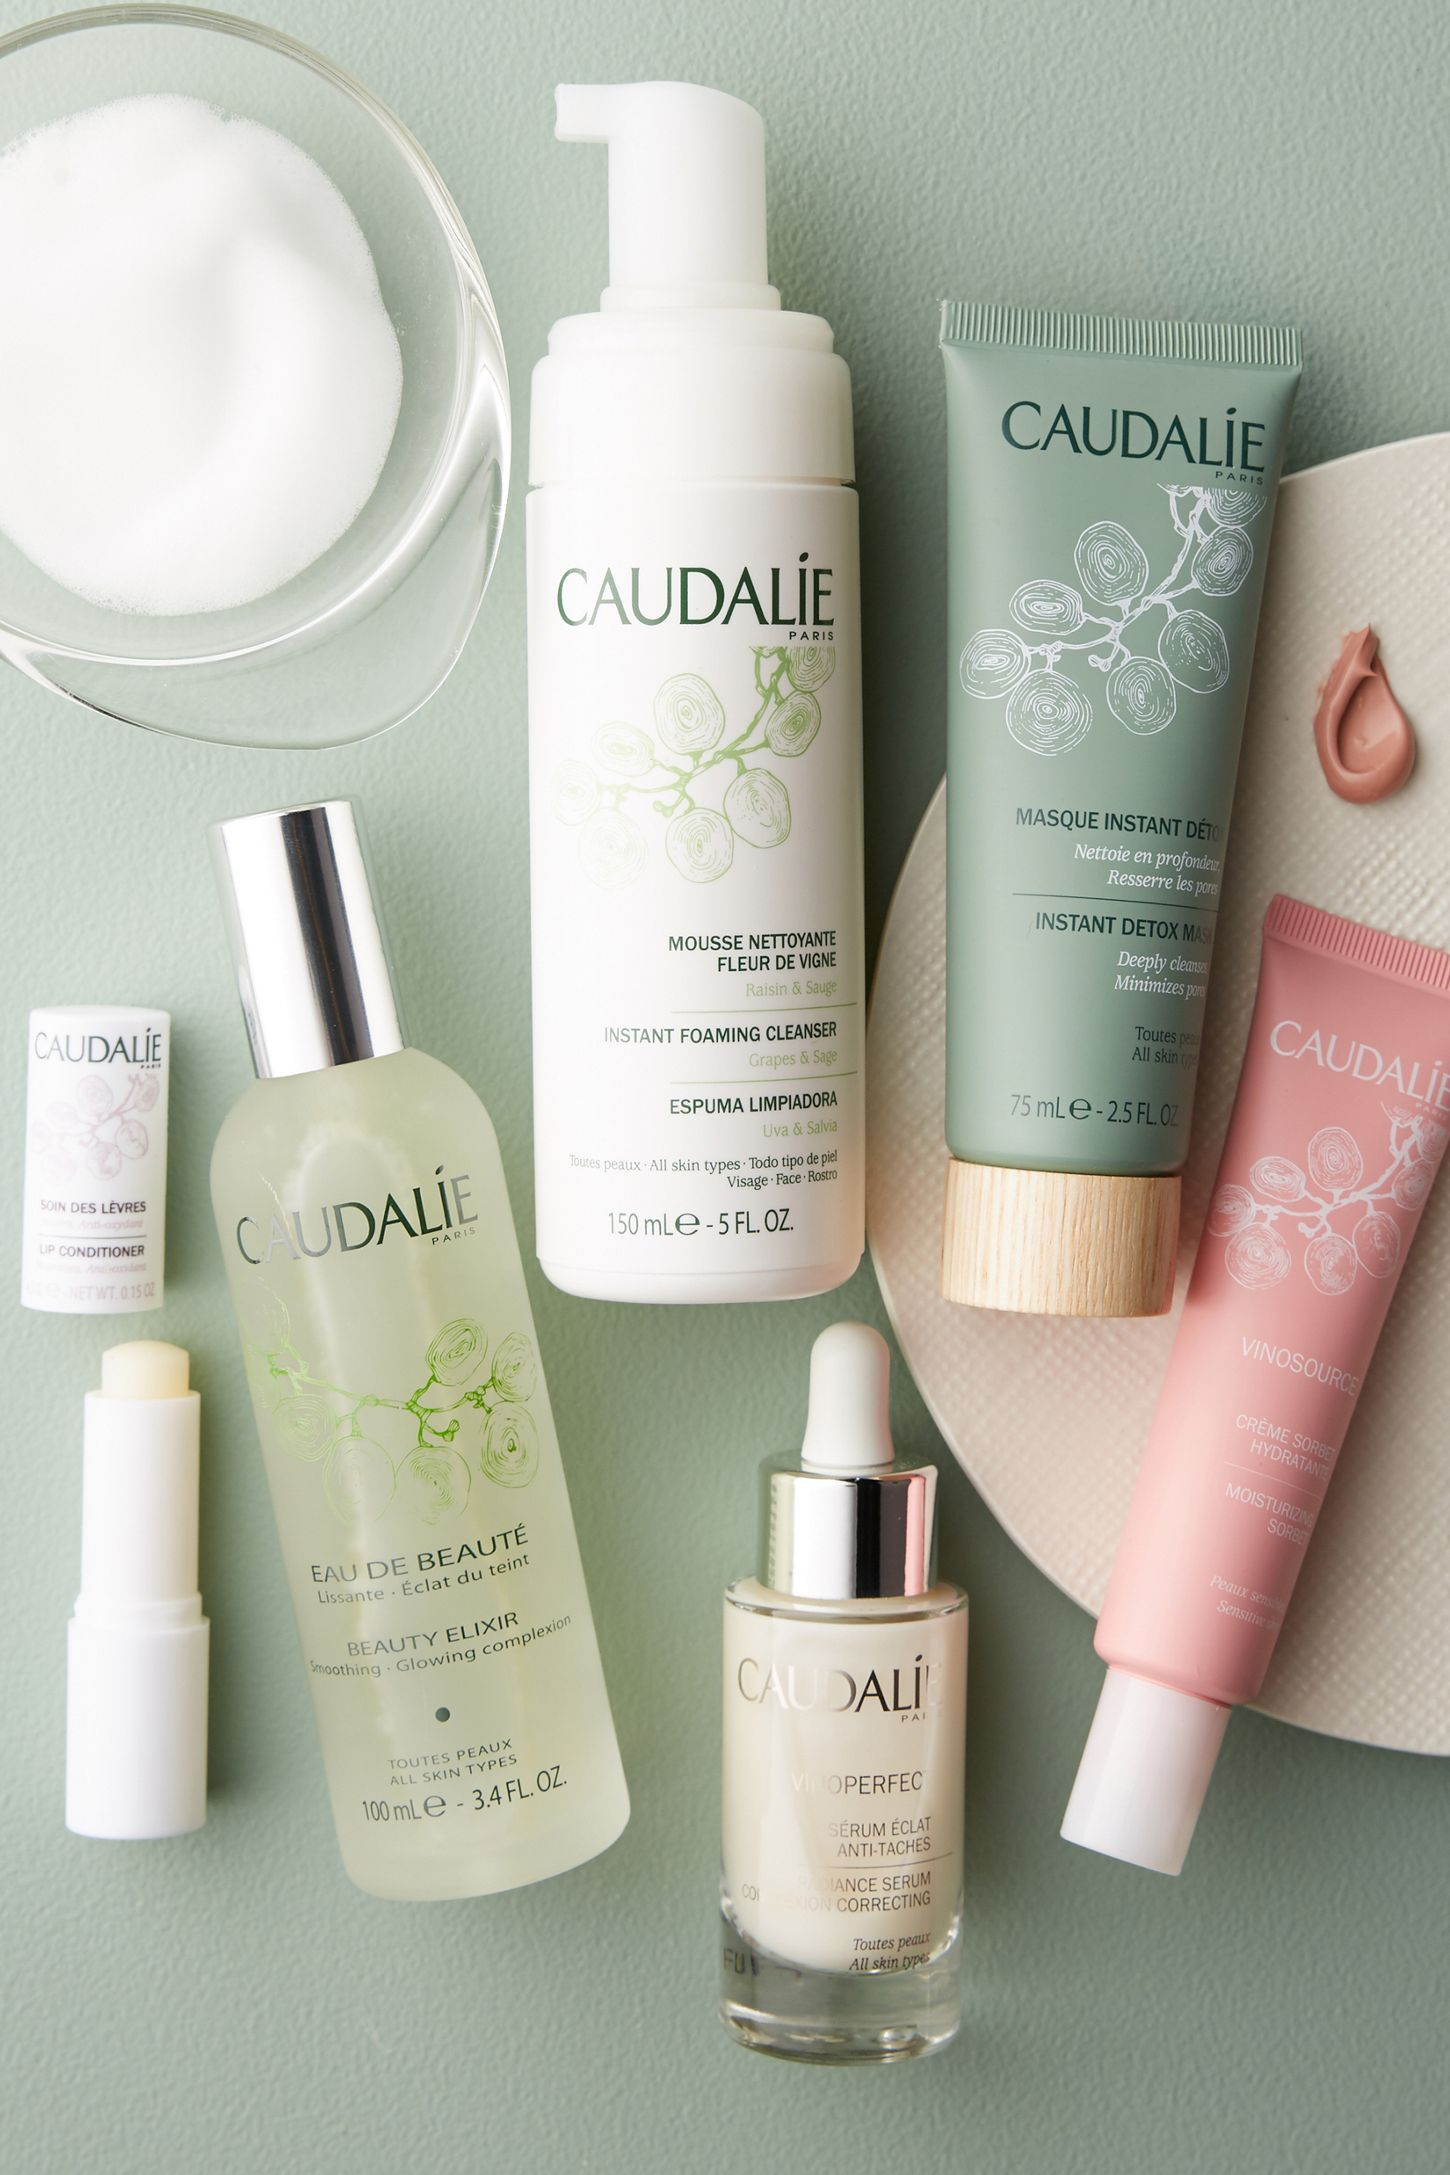 Instant Foaming Cleanser by Caudalie